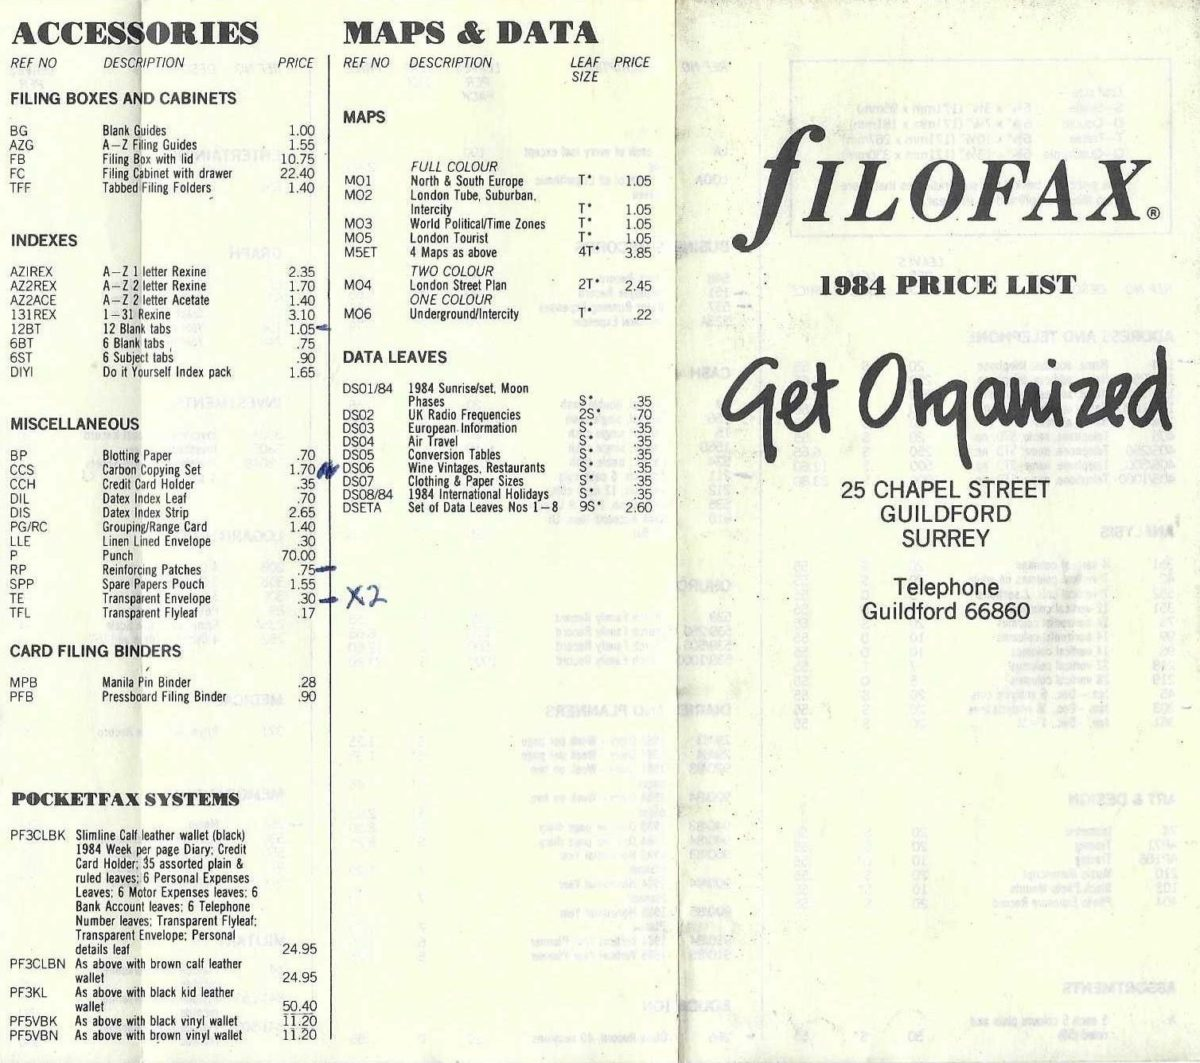 Filofax UK price list 1984